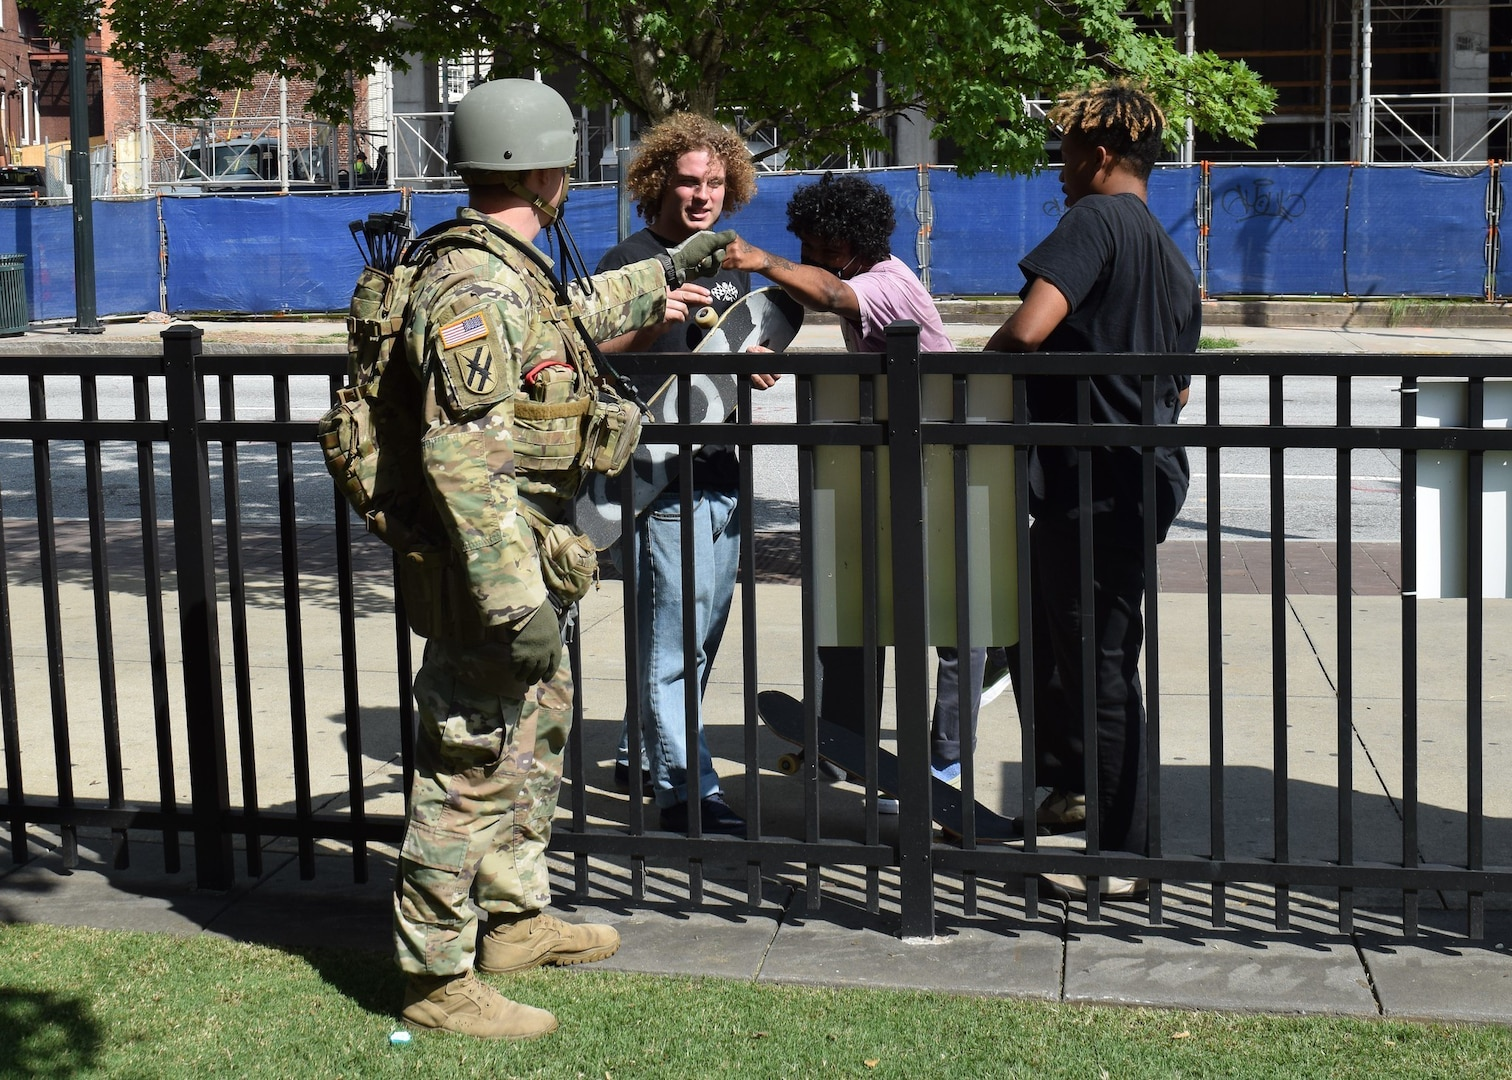 A Georgia National Guard Soldier interacts with people during a peaceful protest in Atlanta, June 2, 2020.